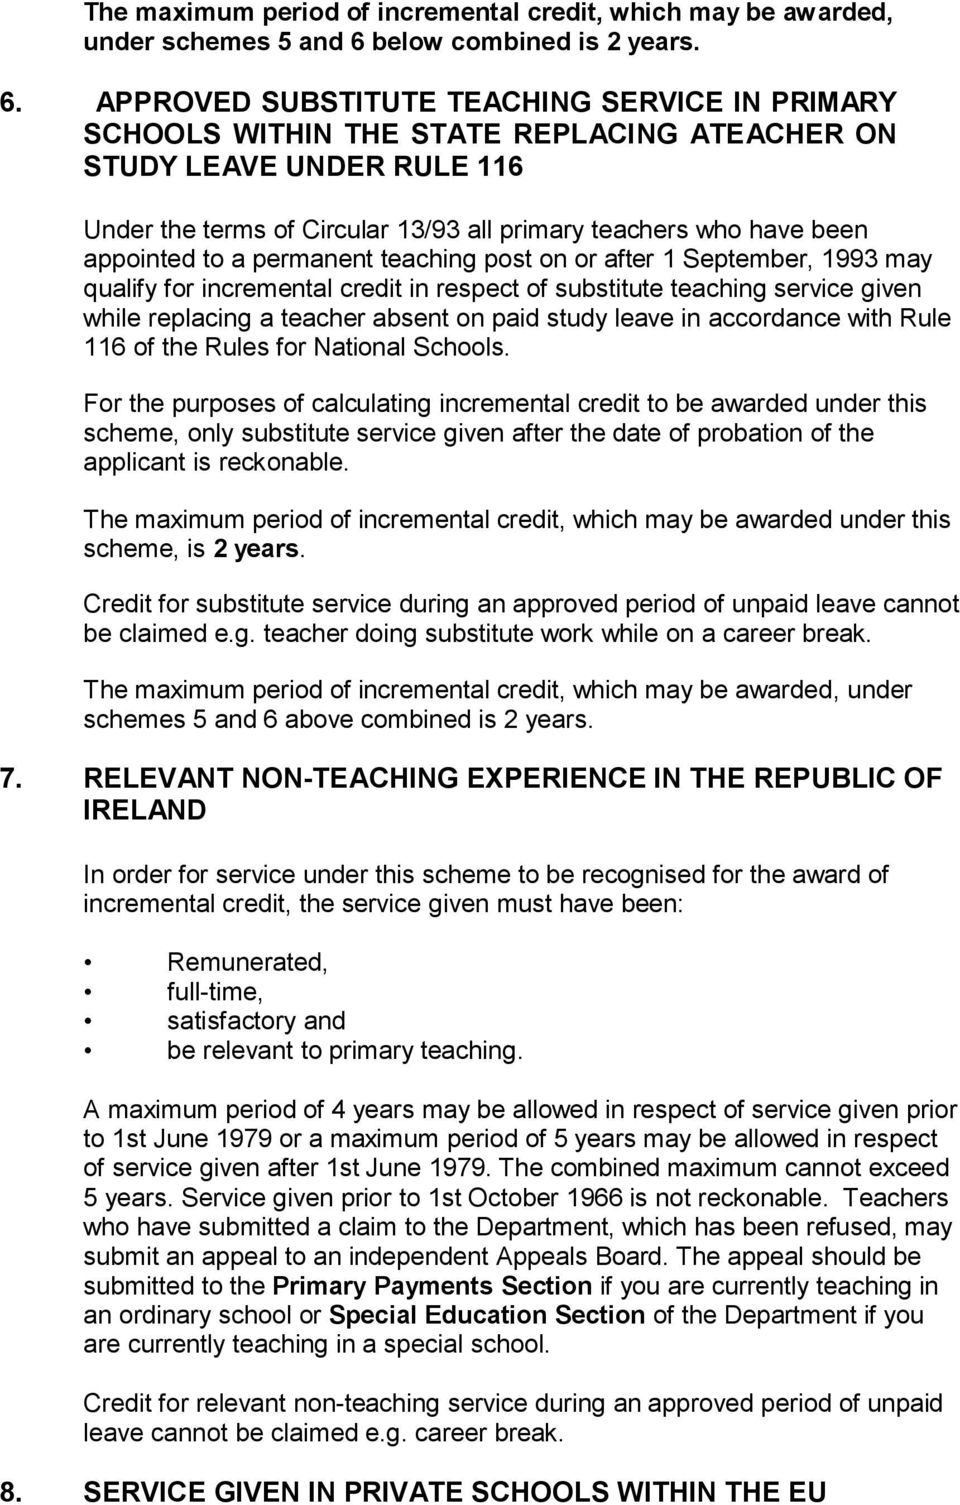 APPROVED SUBSTITUTE TEACHING SERVICE IN PRIMARY SCHOOLS WITHIN THE STATE REPLACING ATEACHER ON STUDY LEAVE UNDER RULE 116 Under the terms of Circular 13/93 all primary teachers who have been